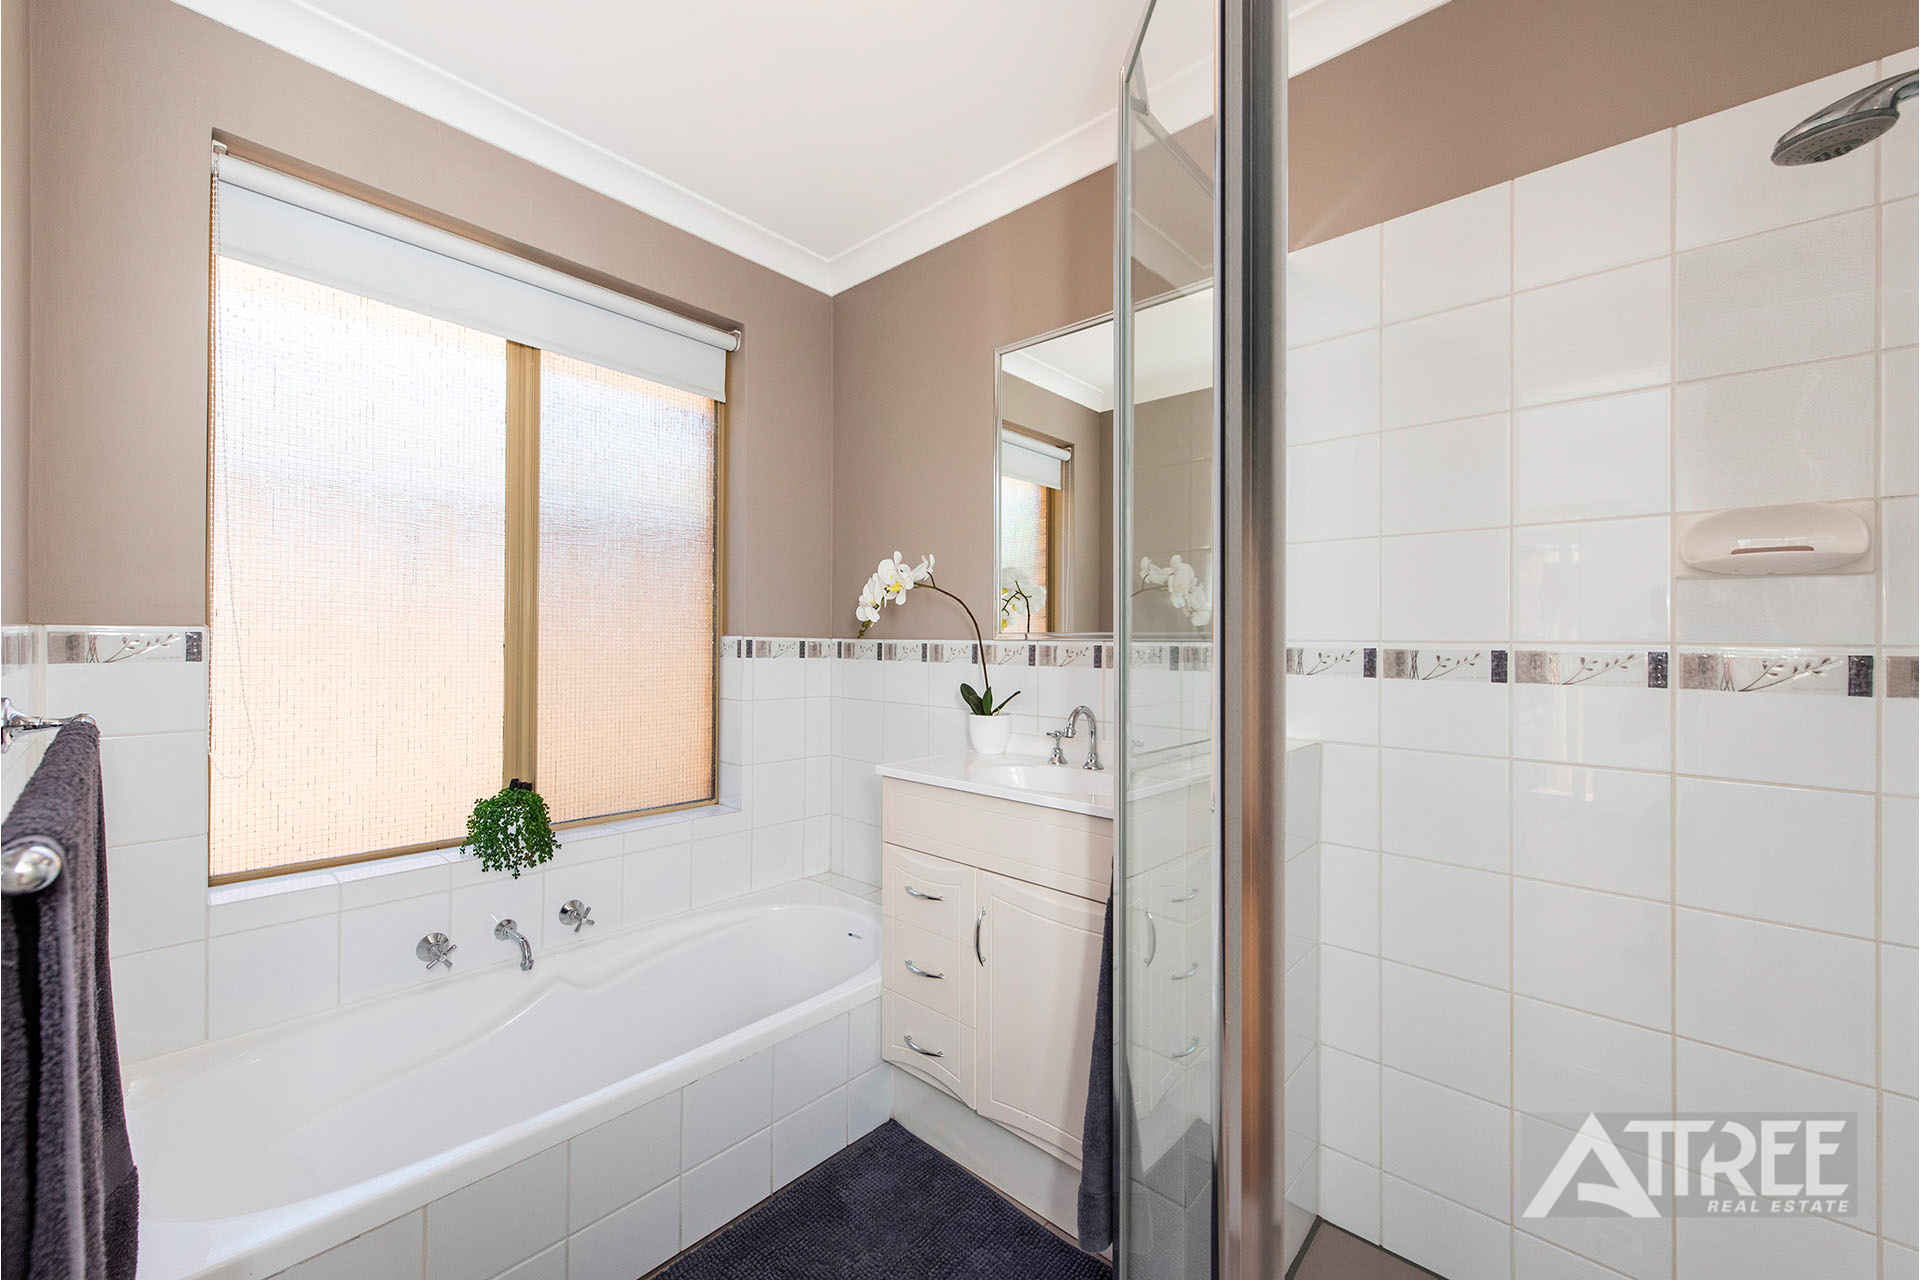 Property for sale in THORNLIE, 27 Brunswick Road : Attree Real Estate